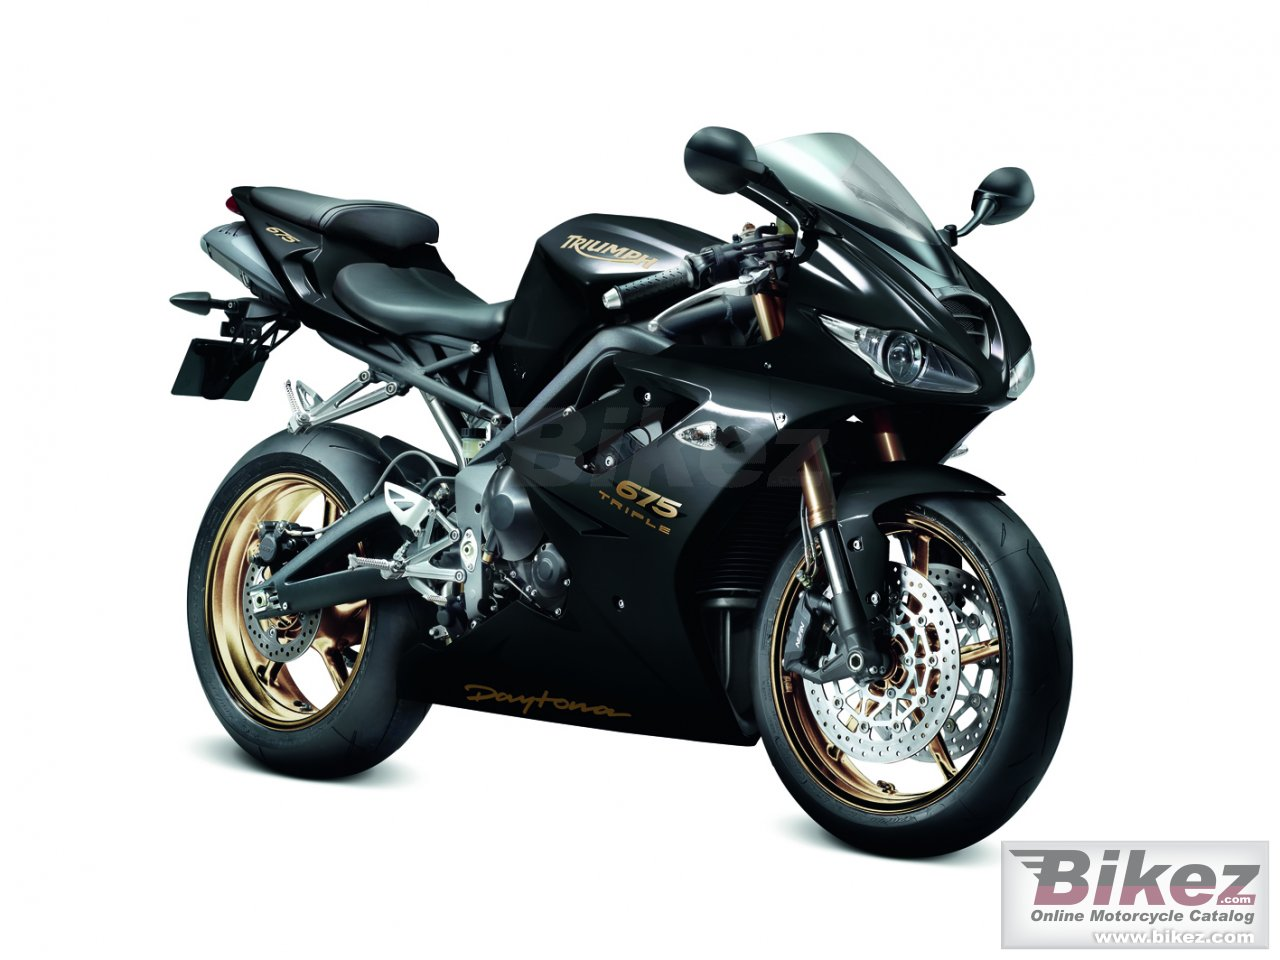 Big Triumph daytona 675 picture and wallpaper from Bikez.com